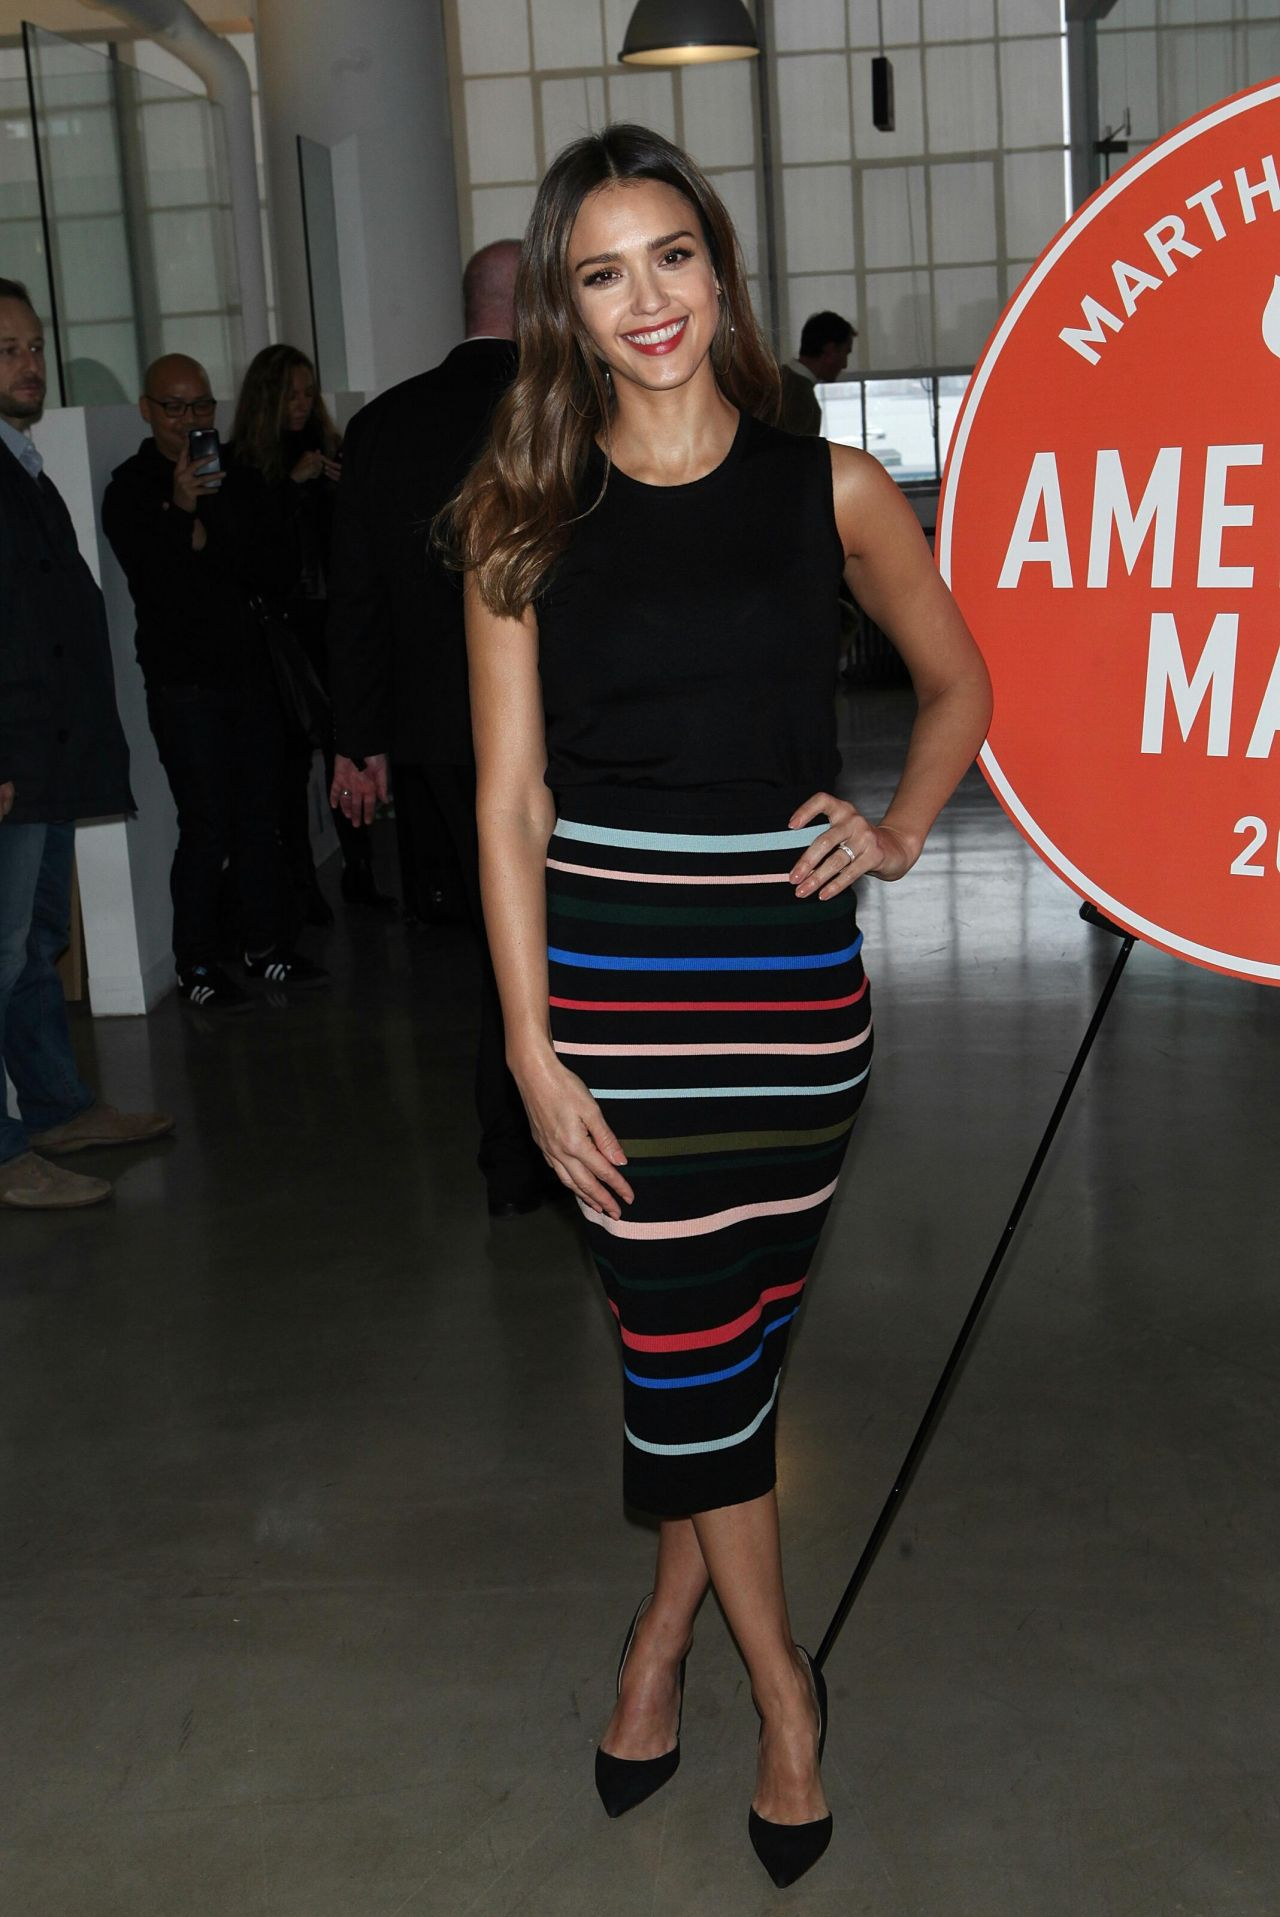 http://celebmafia.com/wp-content/uploads/2016/10/jessica-alba-martha-stewart-made-in-america-ny-summit-in-new-york-city-10-22-2016-2.jpg